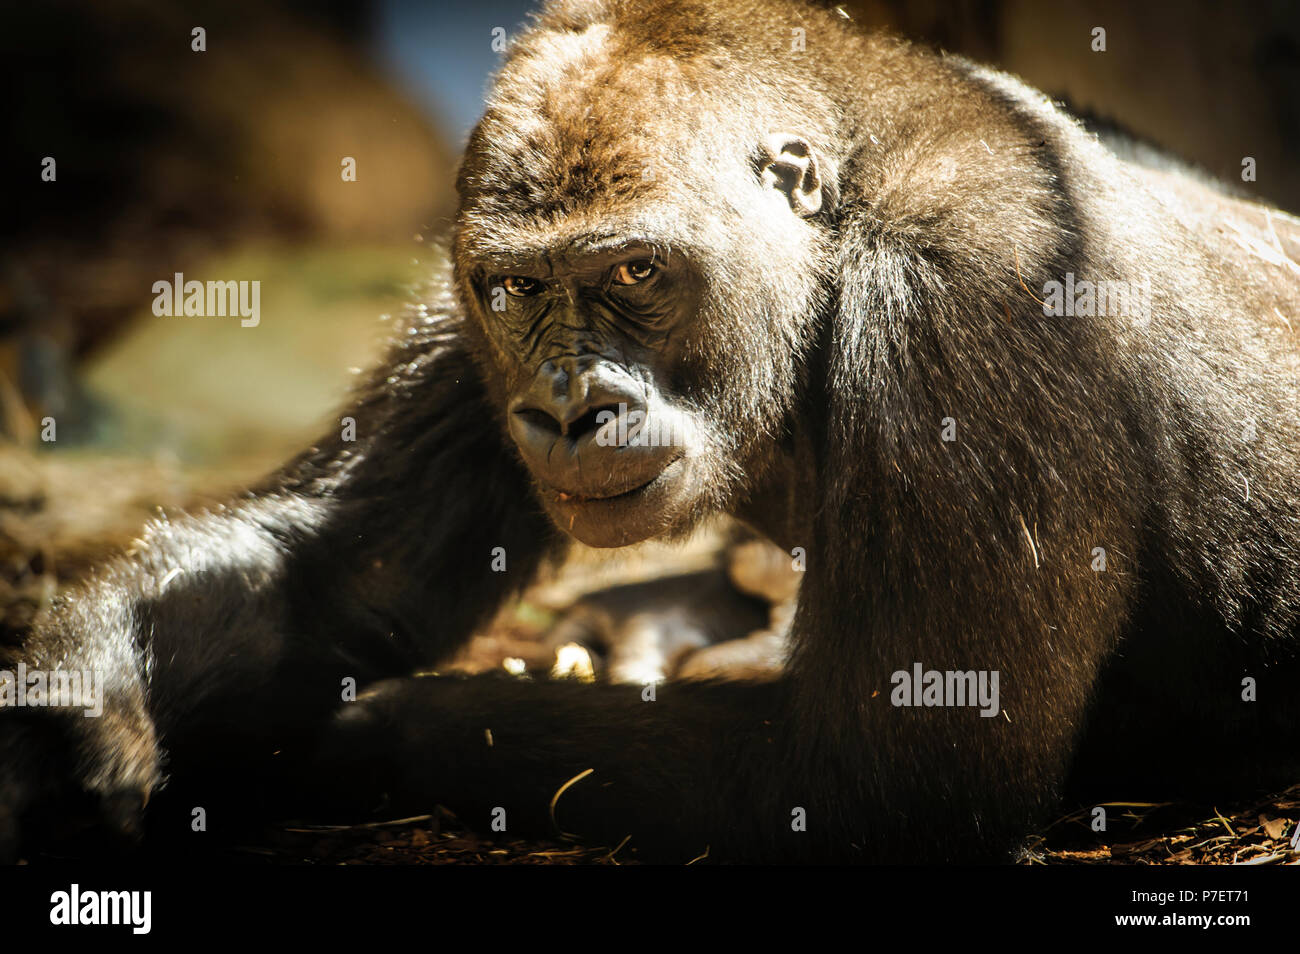 curious gorilla staring at the camera - Stock Image